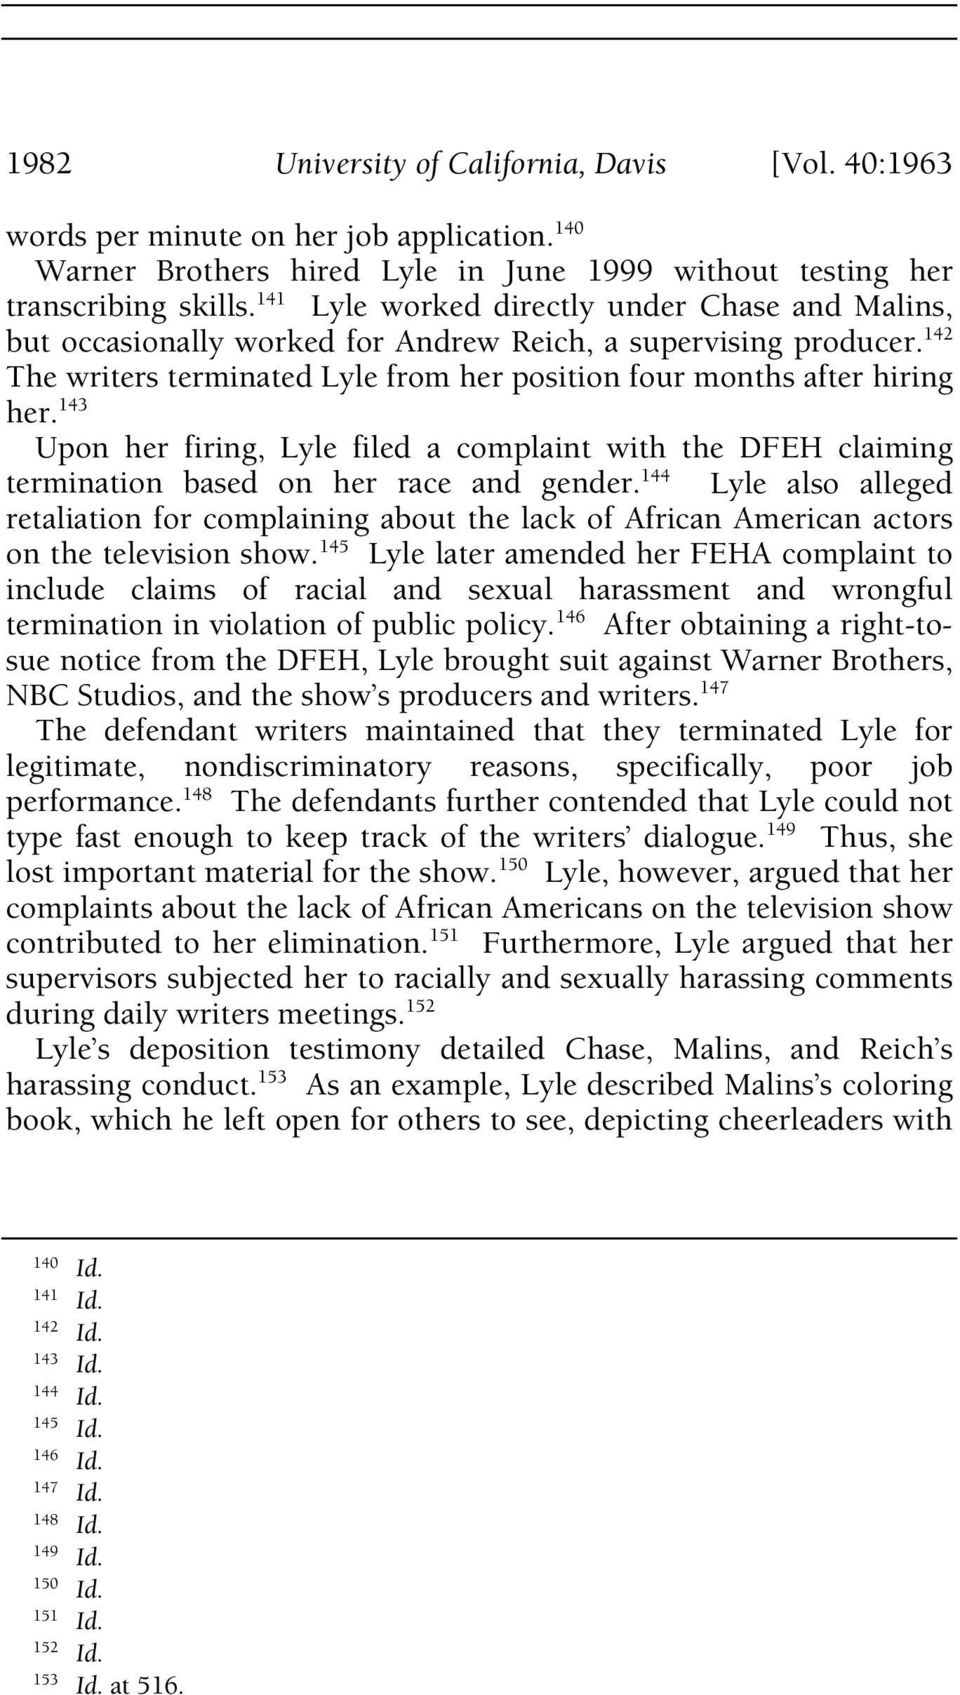 143 Upon her firing, Lyle filed a complaint with the DFEH claiming termination based on her race and gender.